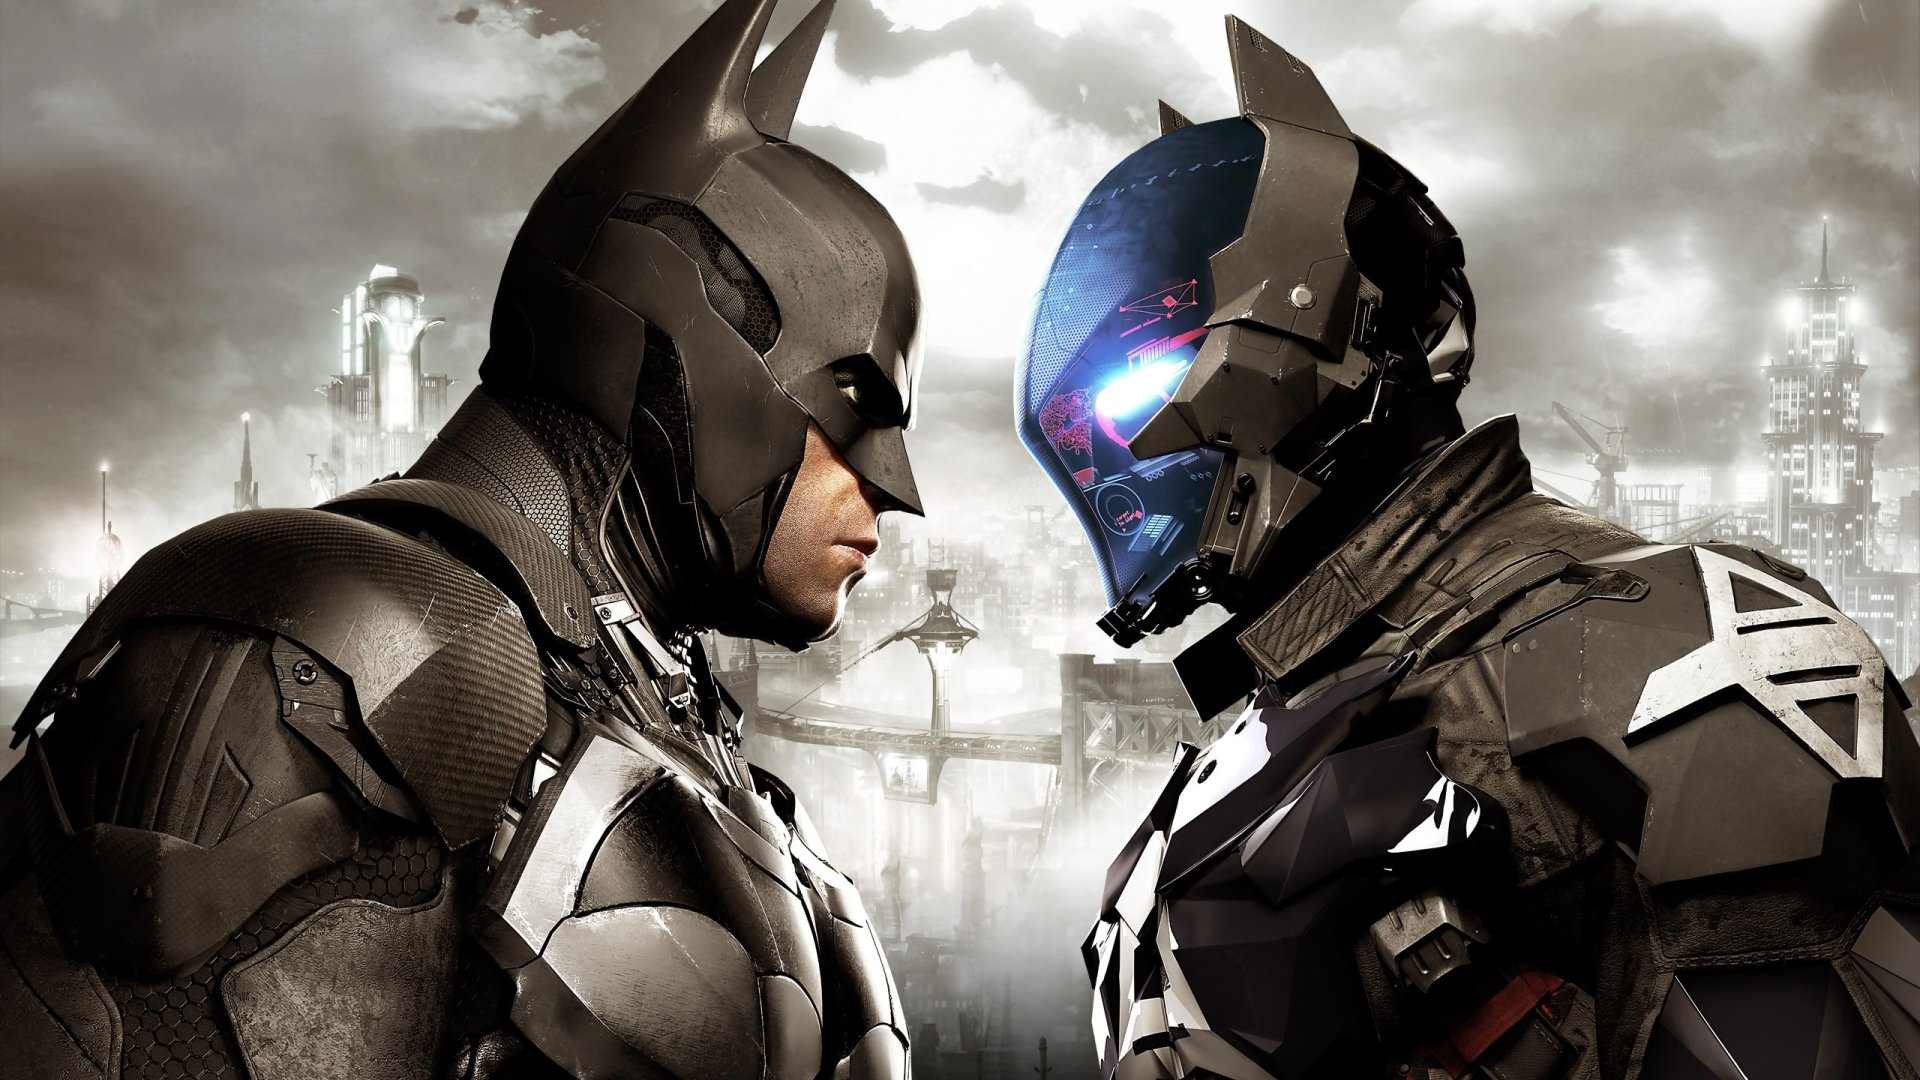 Video Game - Batman: Arkham Knight  Batman Video Game Superhero Wallpaper